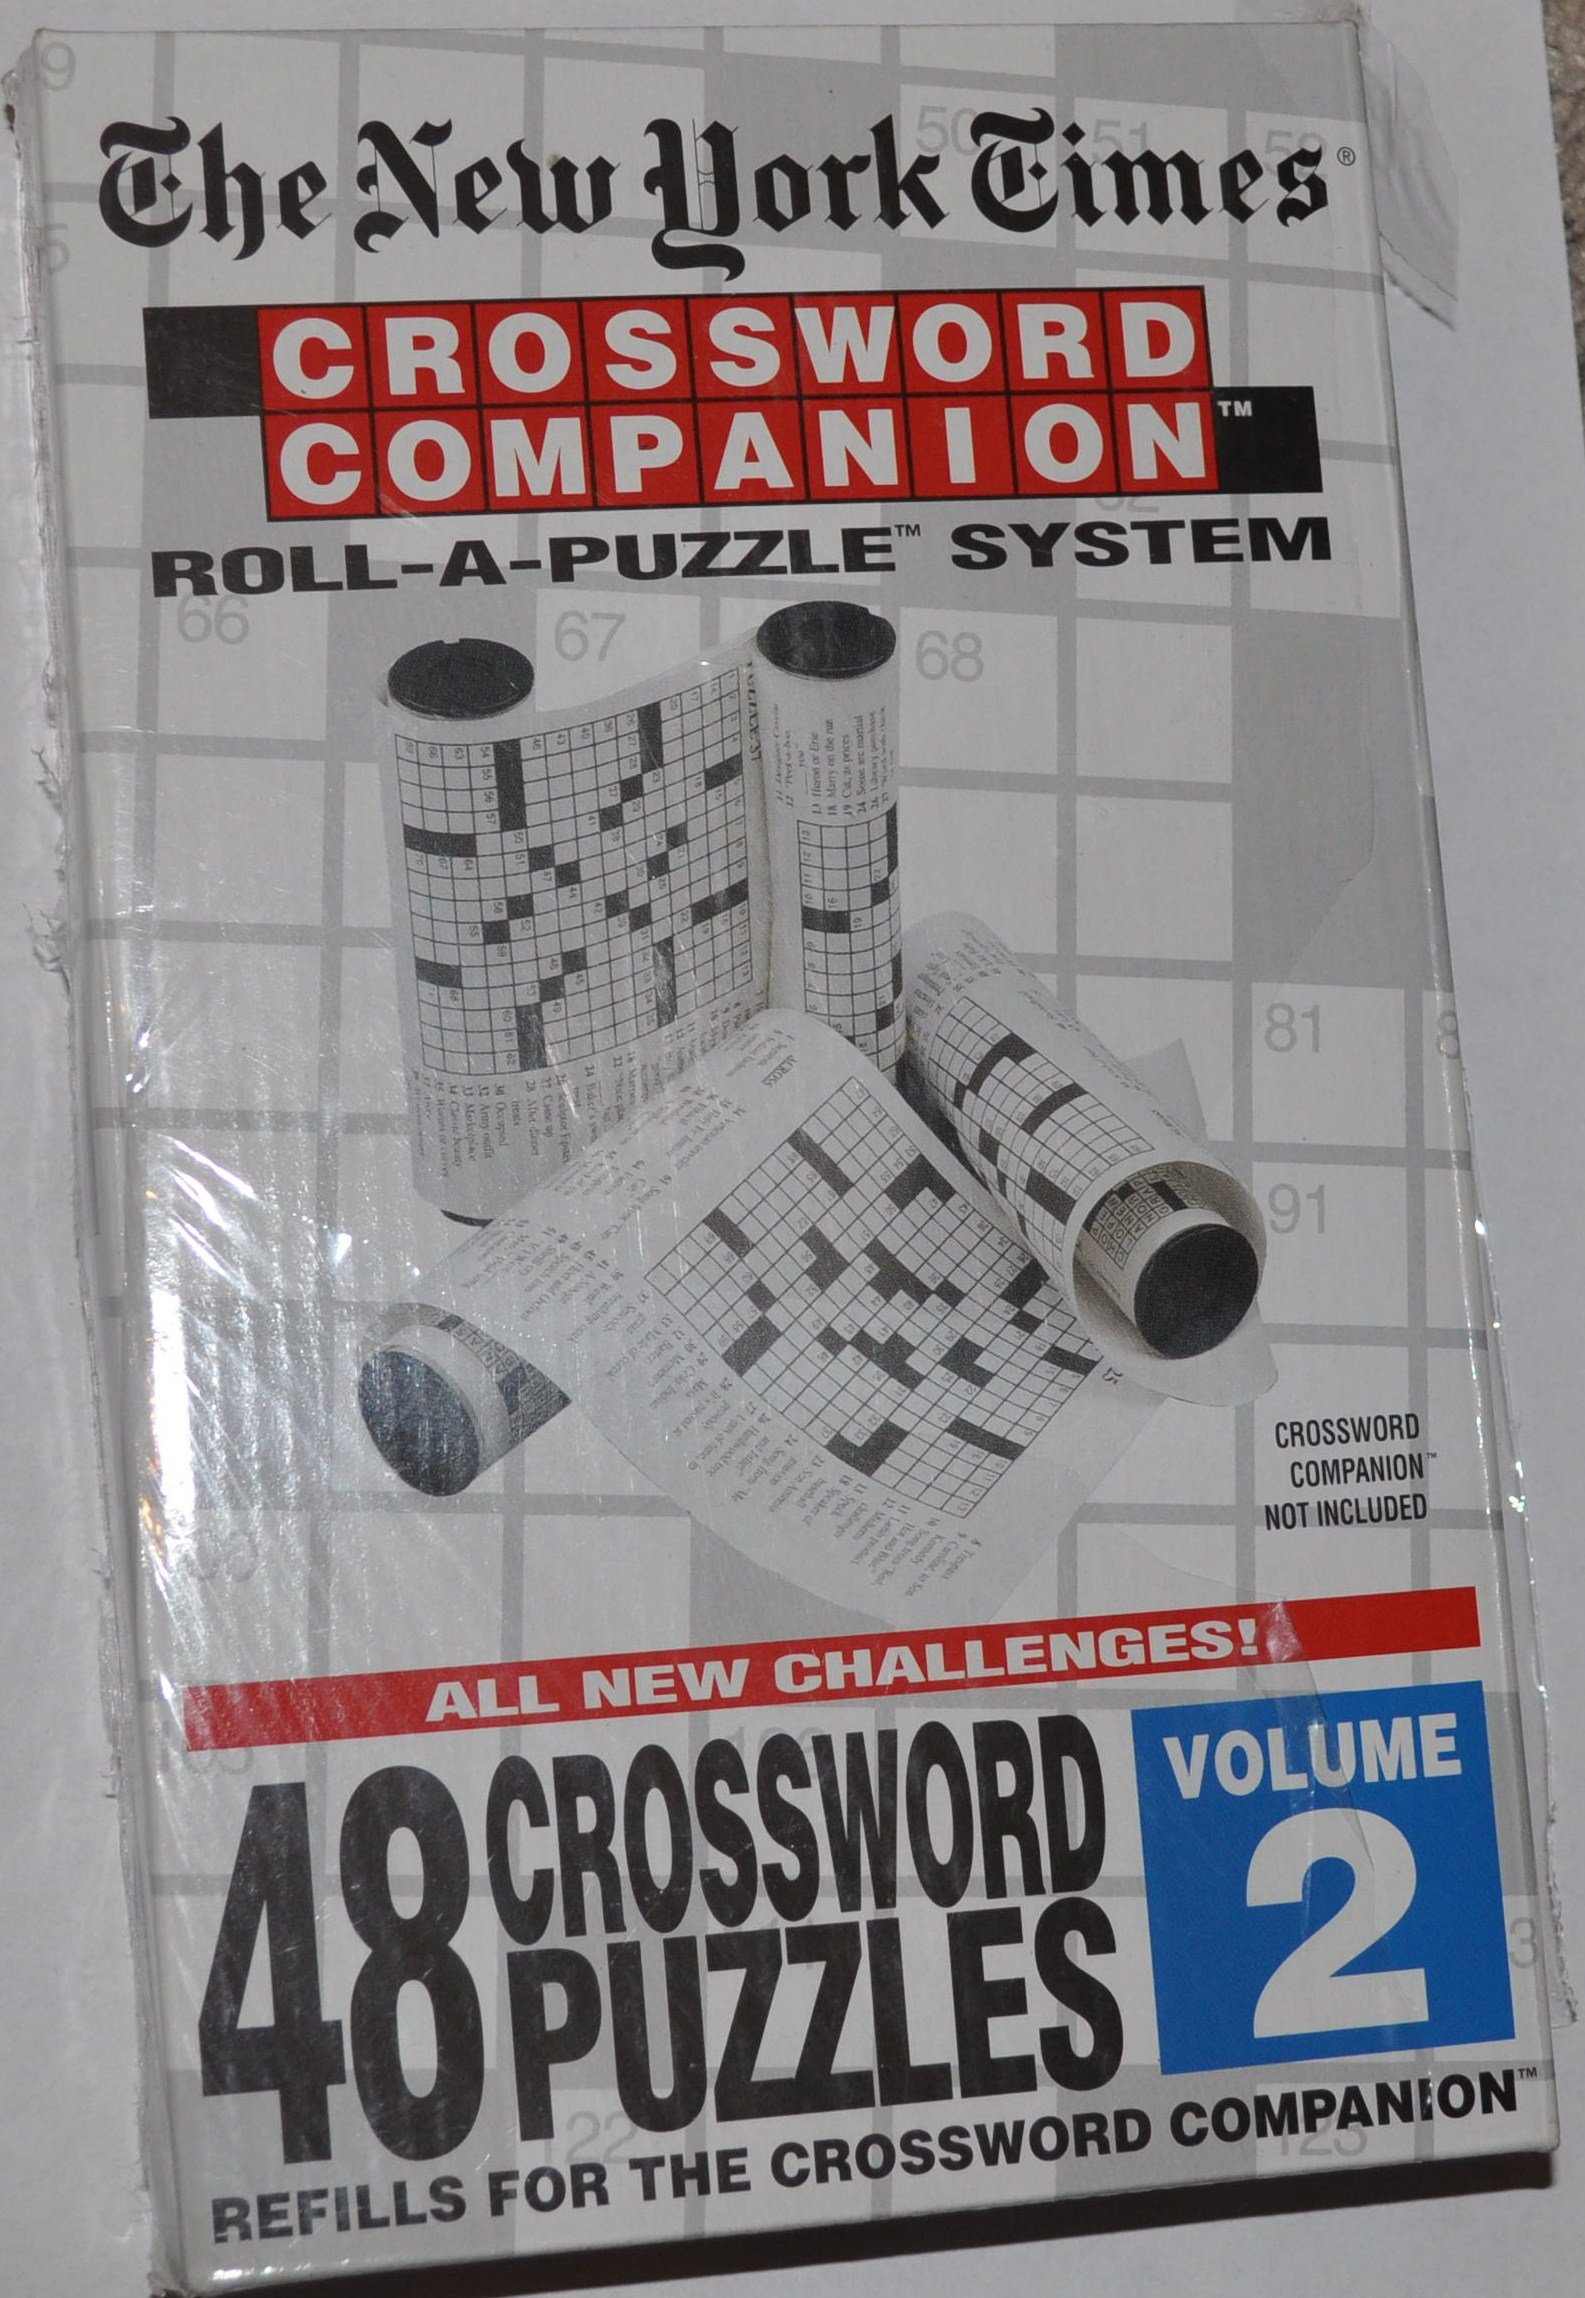 The New York Times: Crossword Companion Roll-A-Puzzle Refills Volume 2